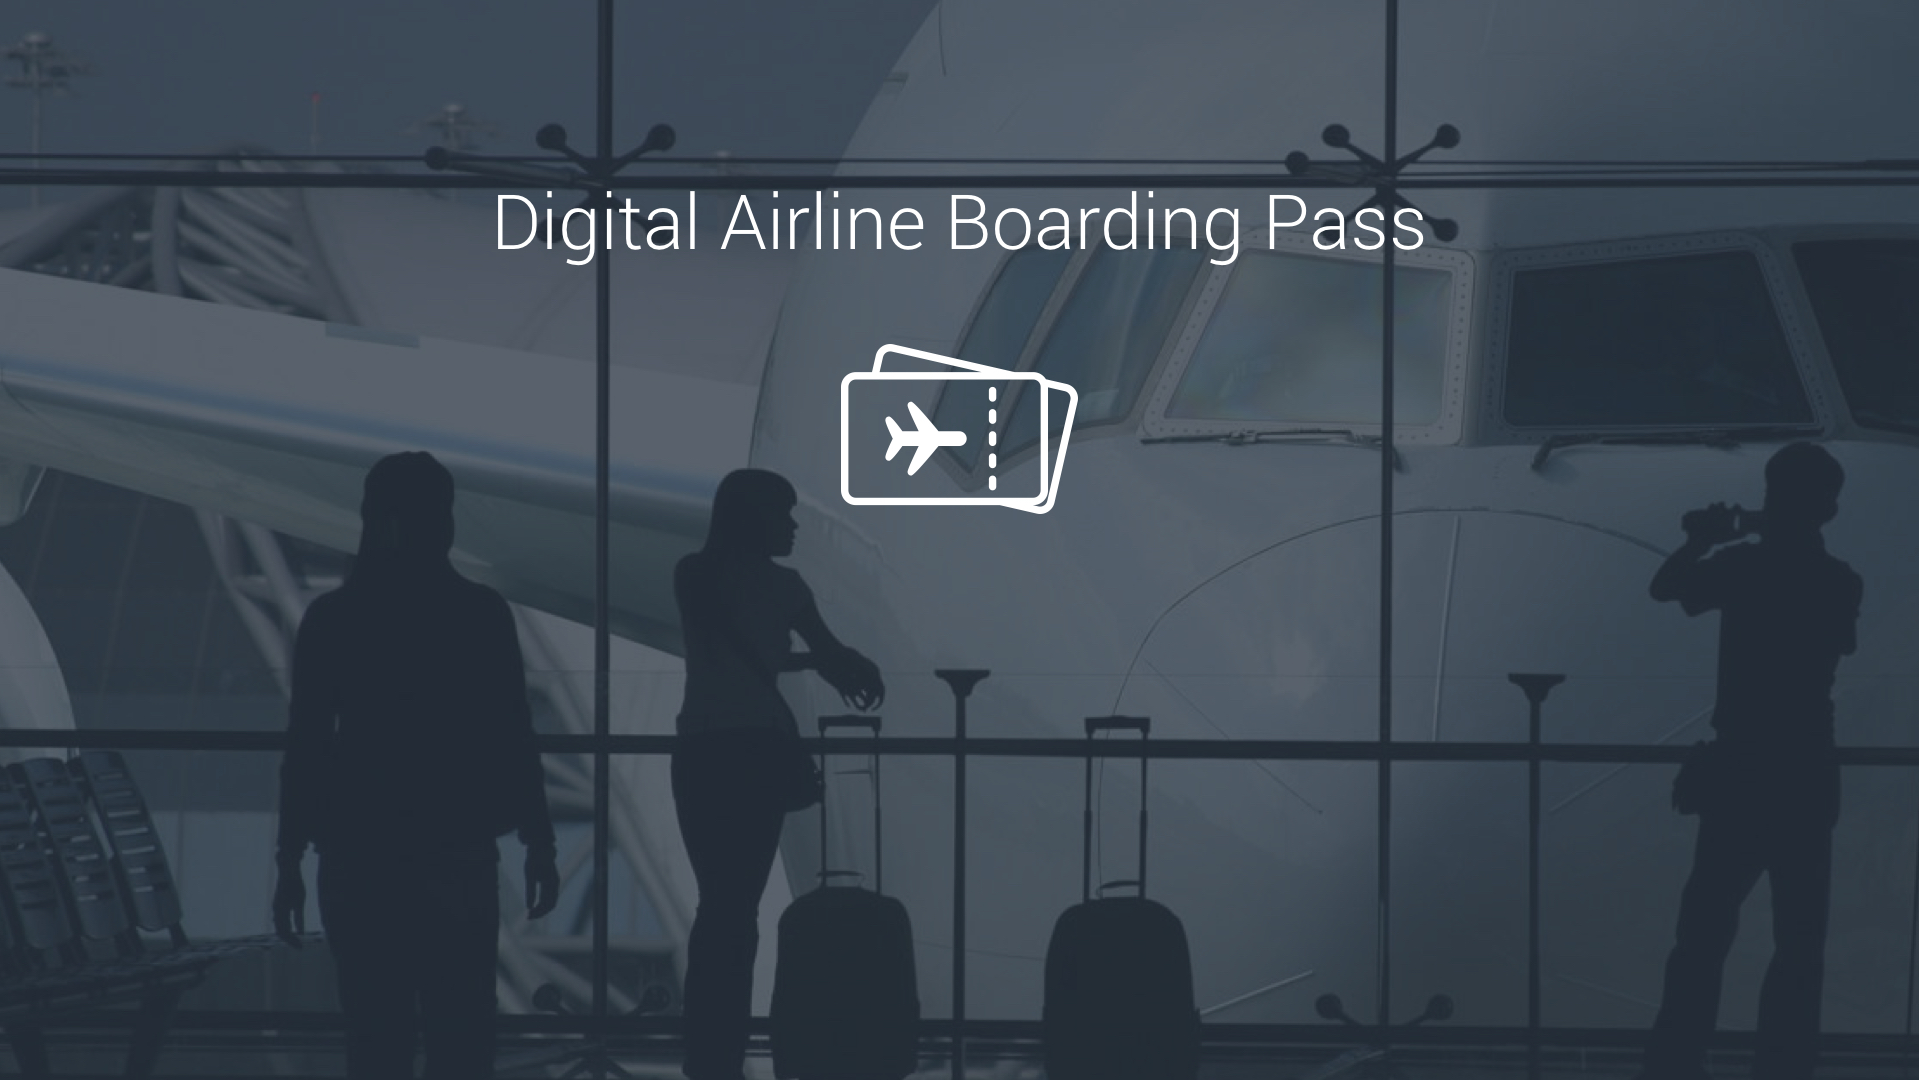 Digital boarding pass_img1.jpeg